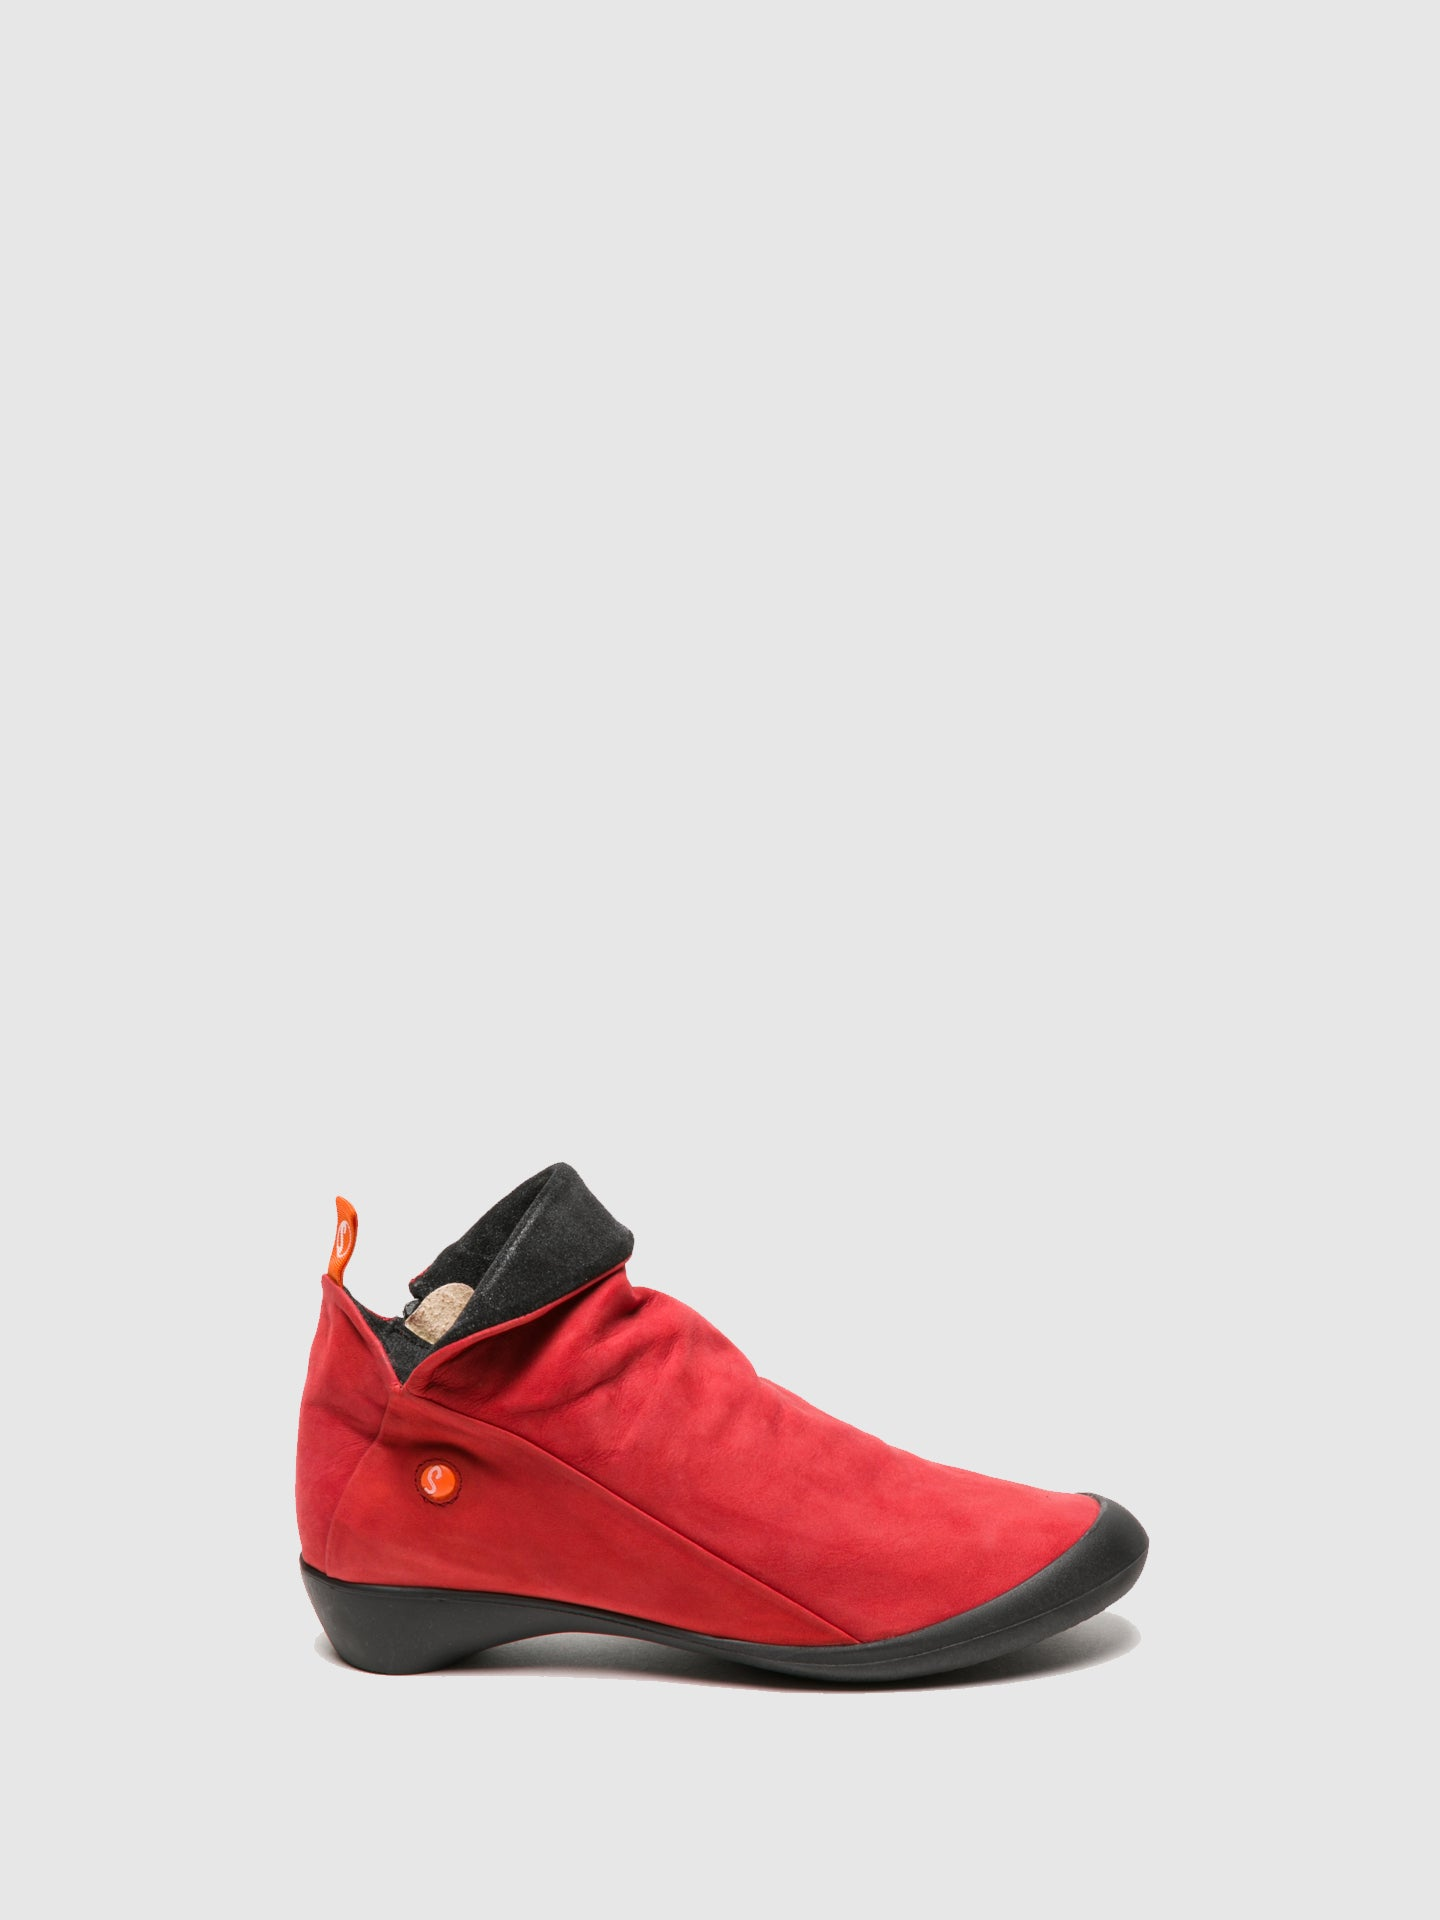 Softinos Zip Up Ankle Boots FARAH RED/ANTHRACITE